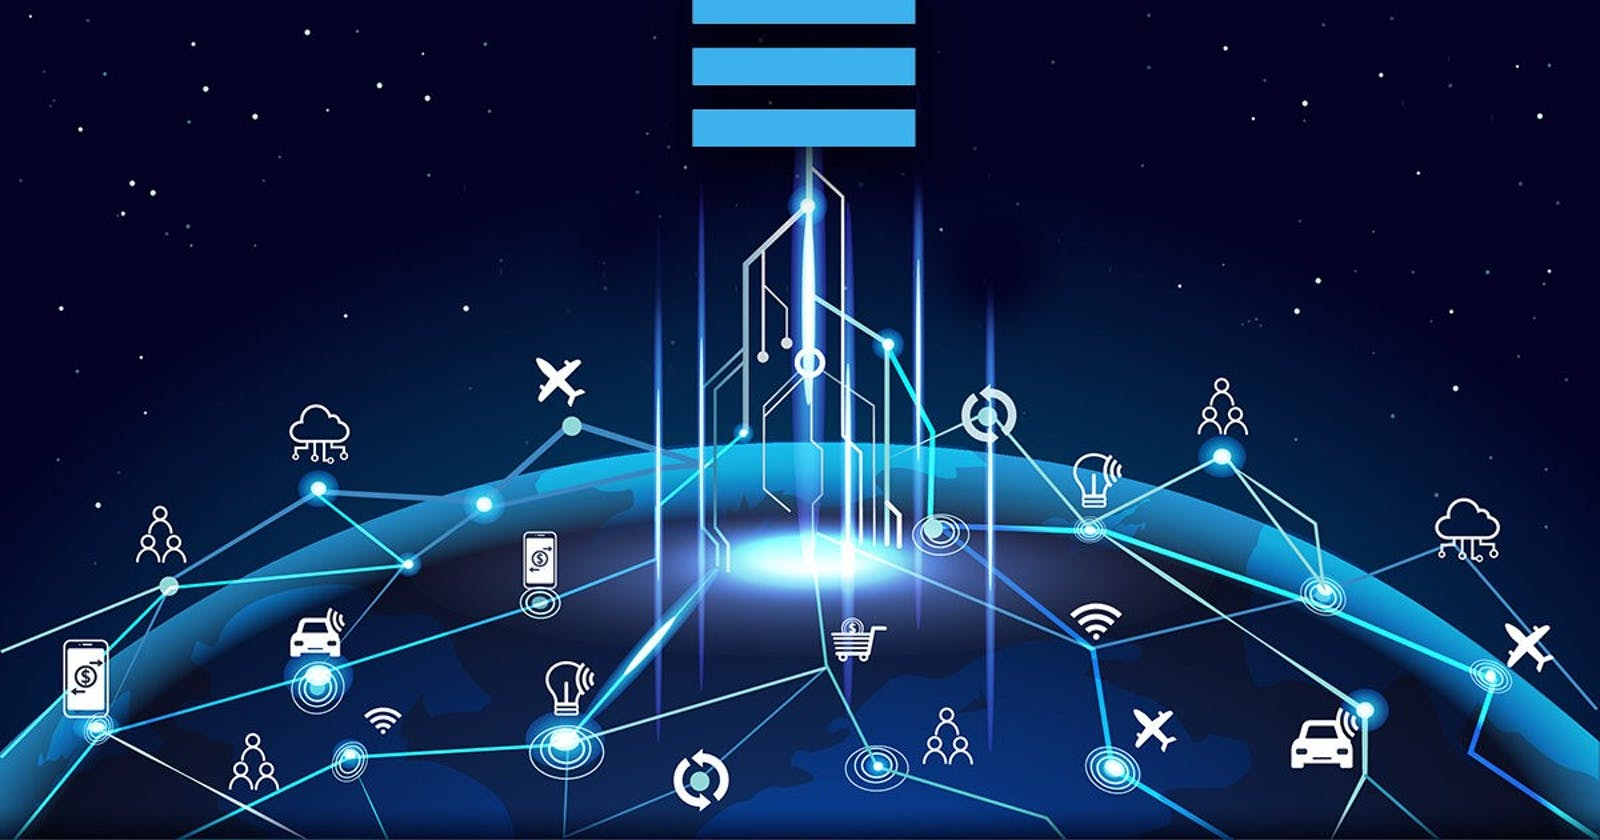 Scope of AI in securing IoT systems